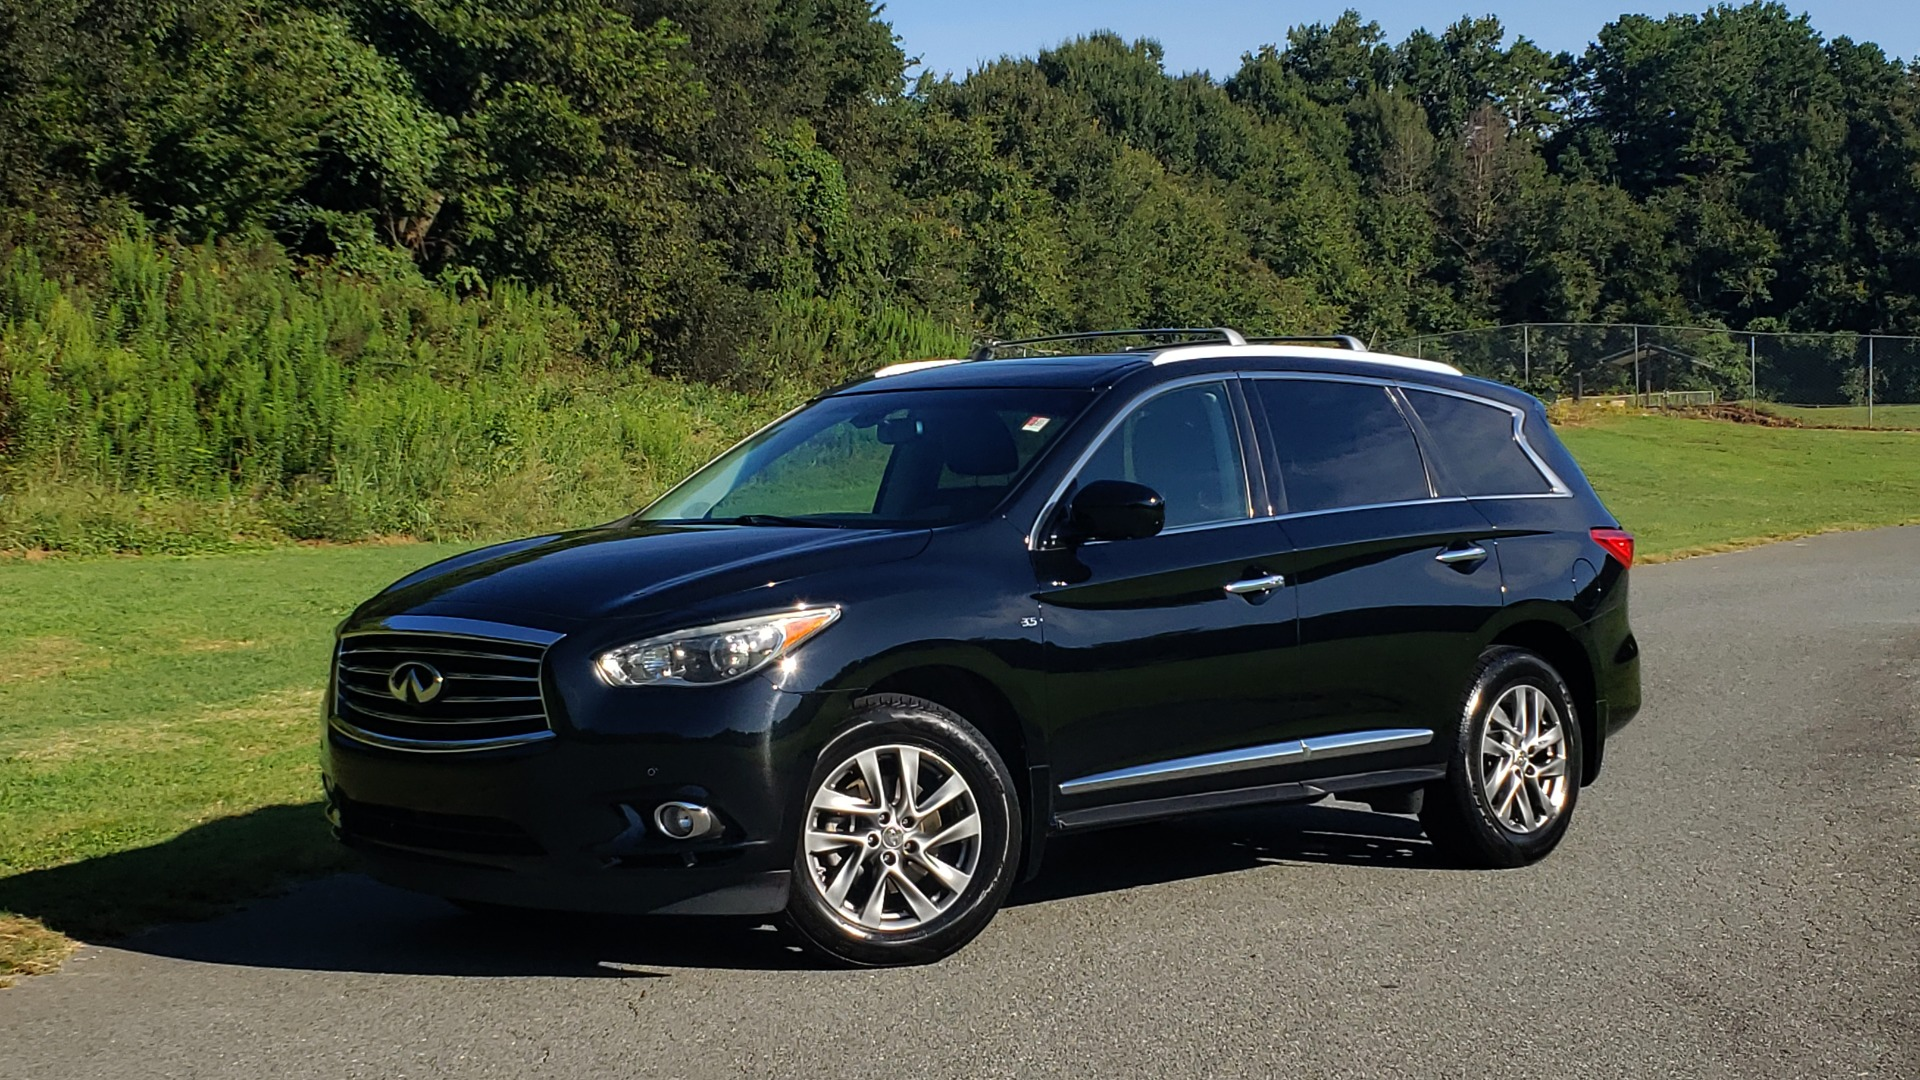 Used 2015 INFINITI QX60 AWD / PREM PLUS PKG / NAV / SUNROOF / BOSE / 3-ROW / REARVIEW for sale $19,695 at Formula Imports in Charlotte NC 28227 2